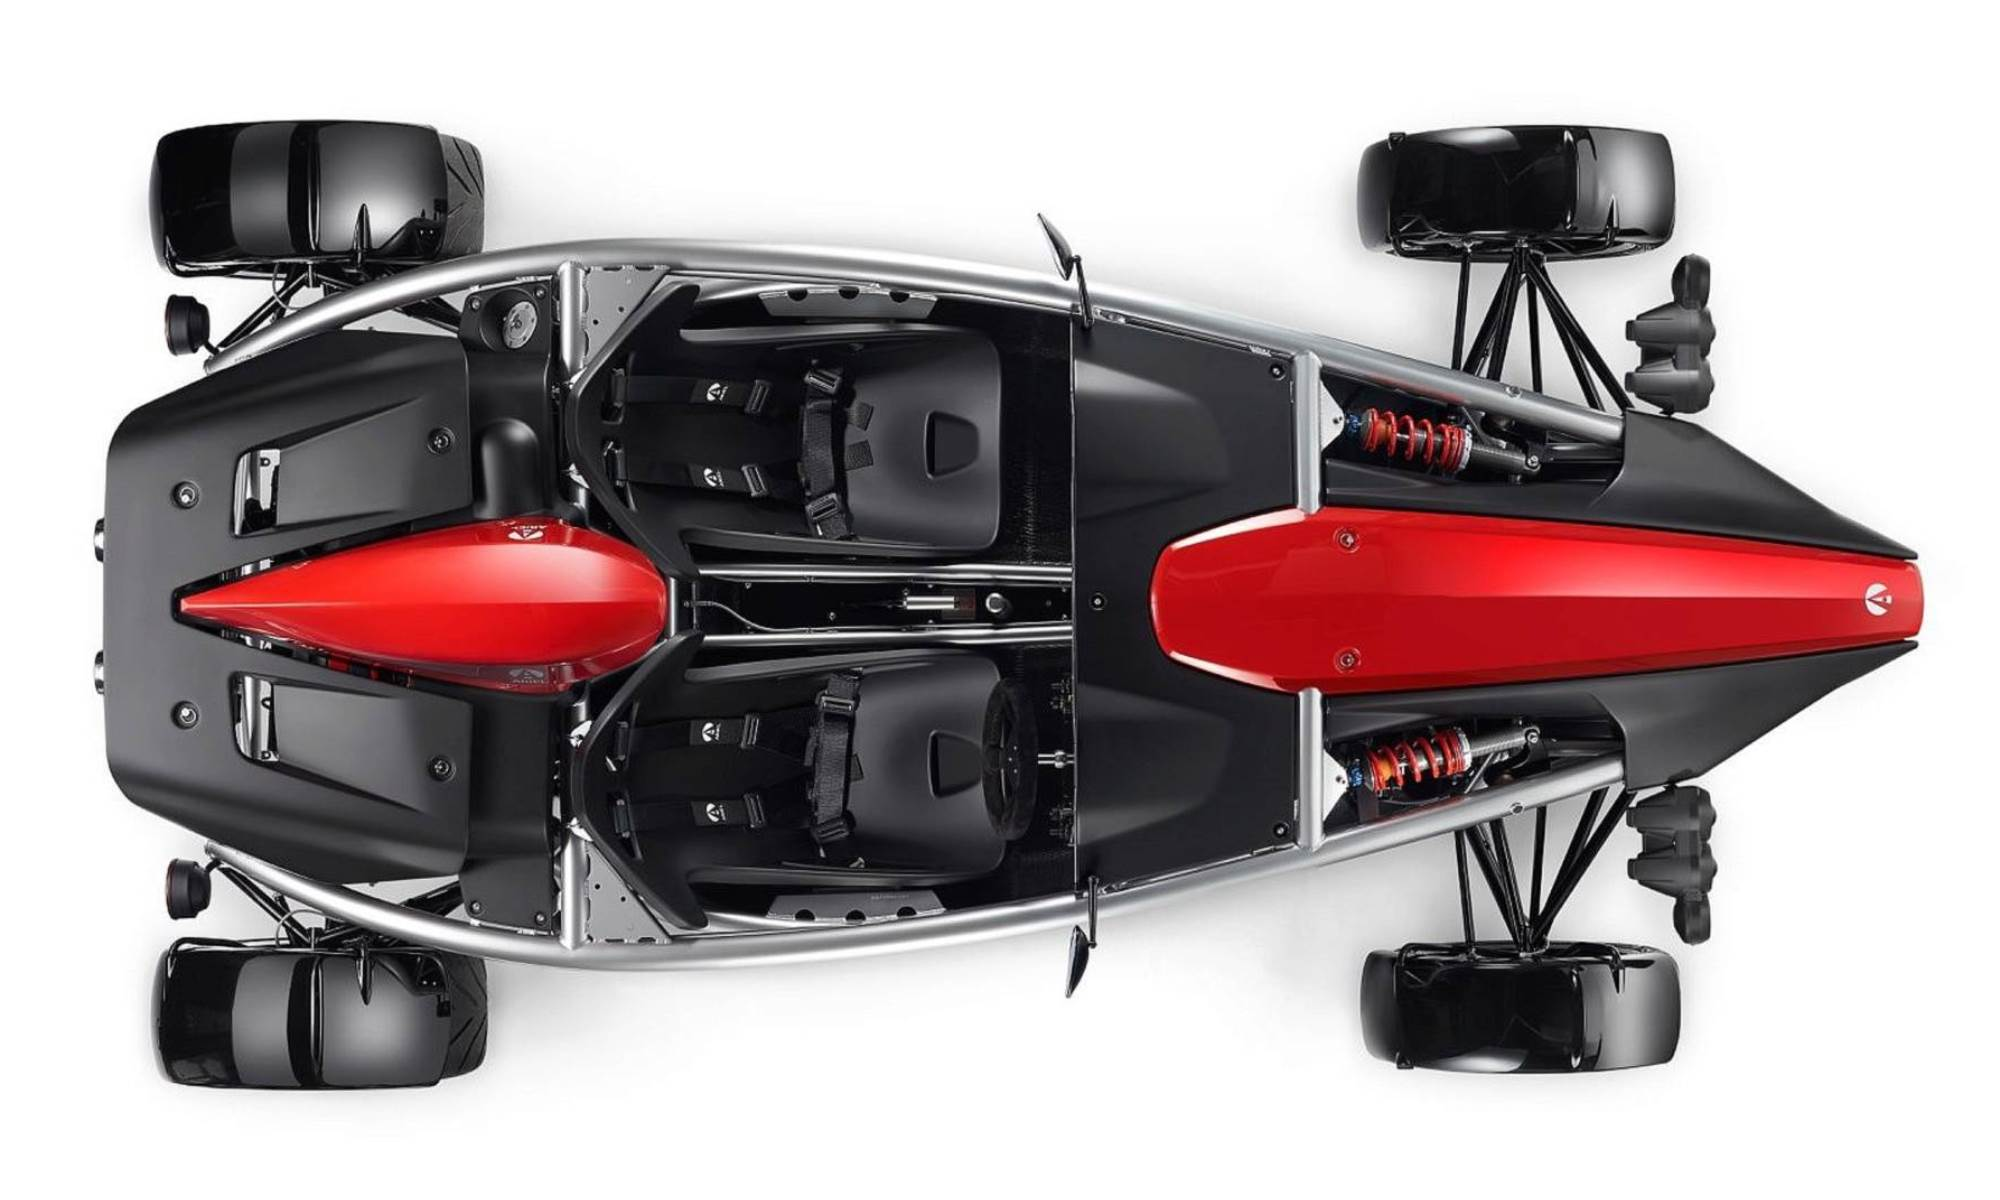 A lesser seen plan view of the small sportscar